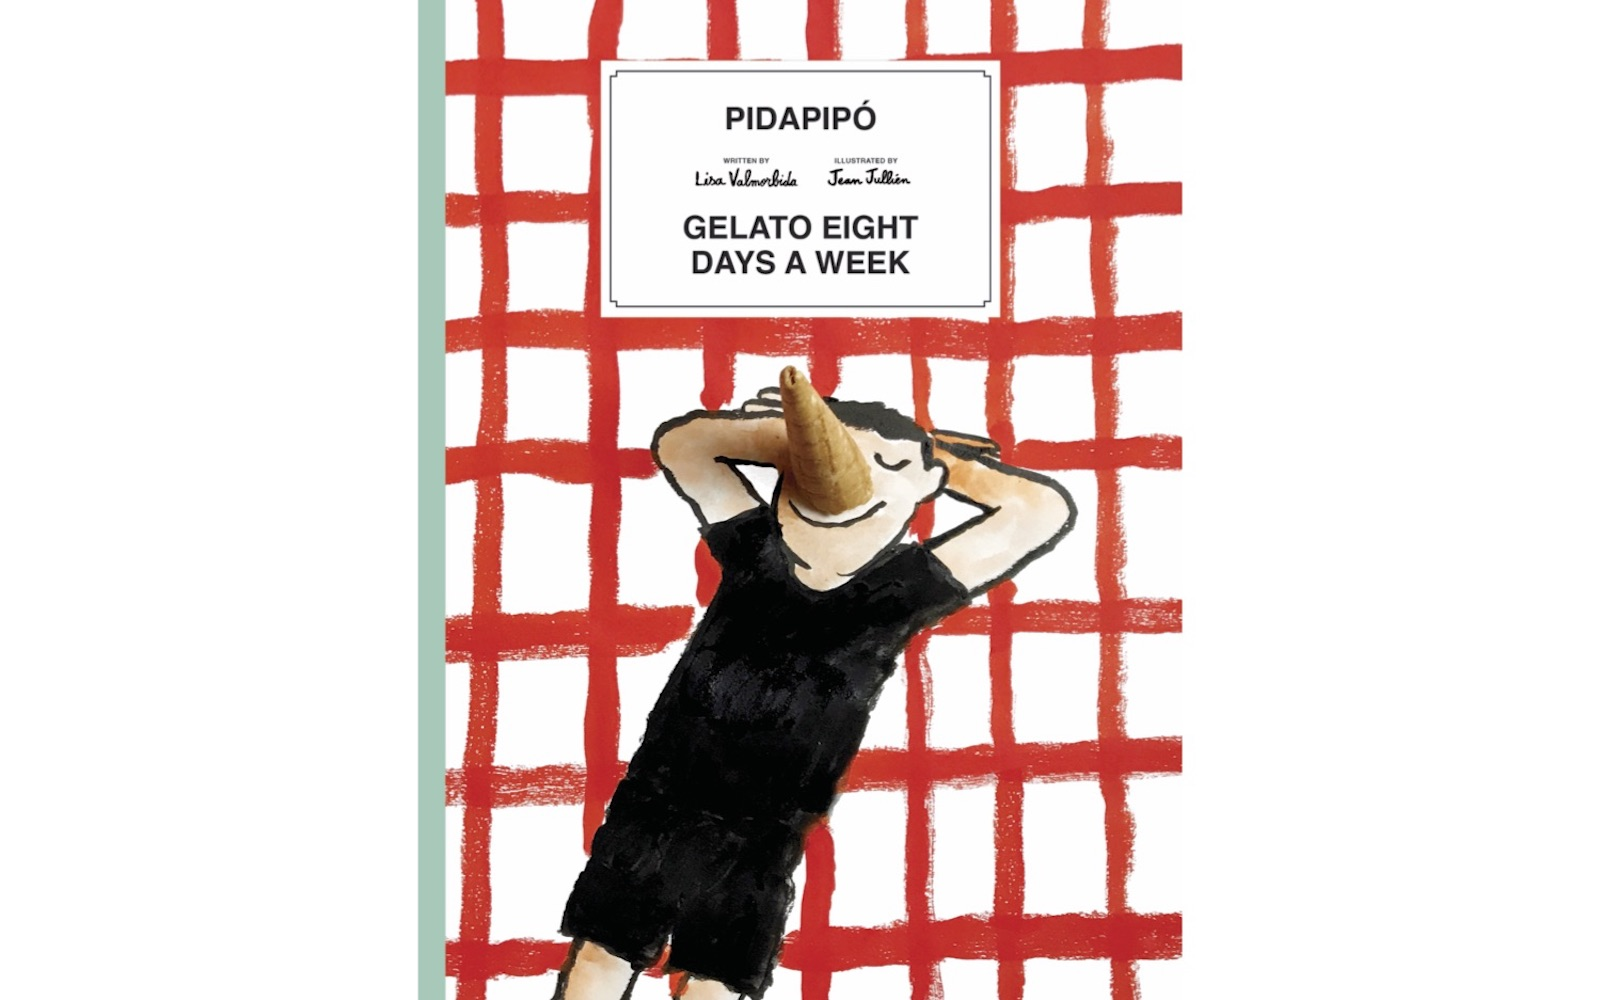 Pidapipo: Gelato Eight Days a Week by Lisa Valmorbida book cover